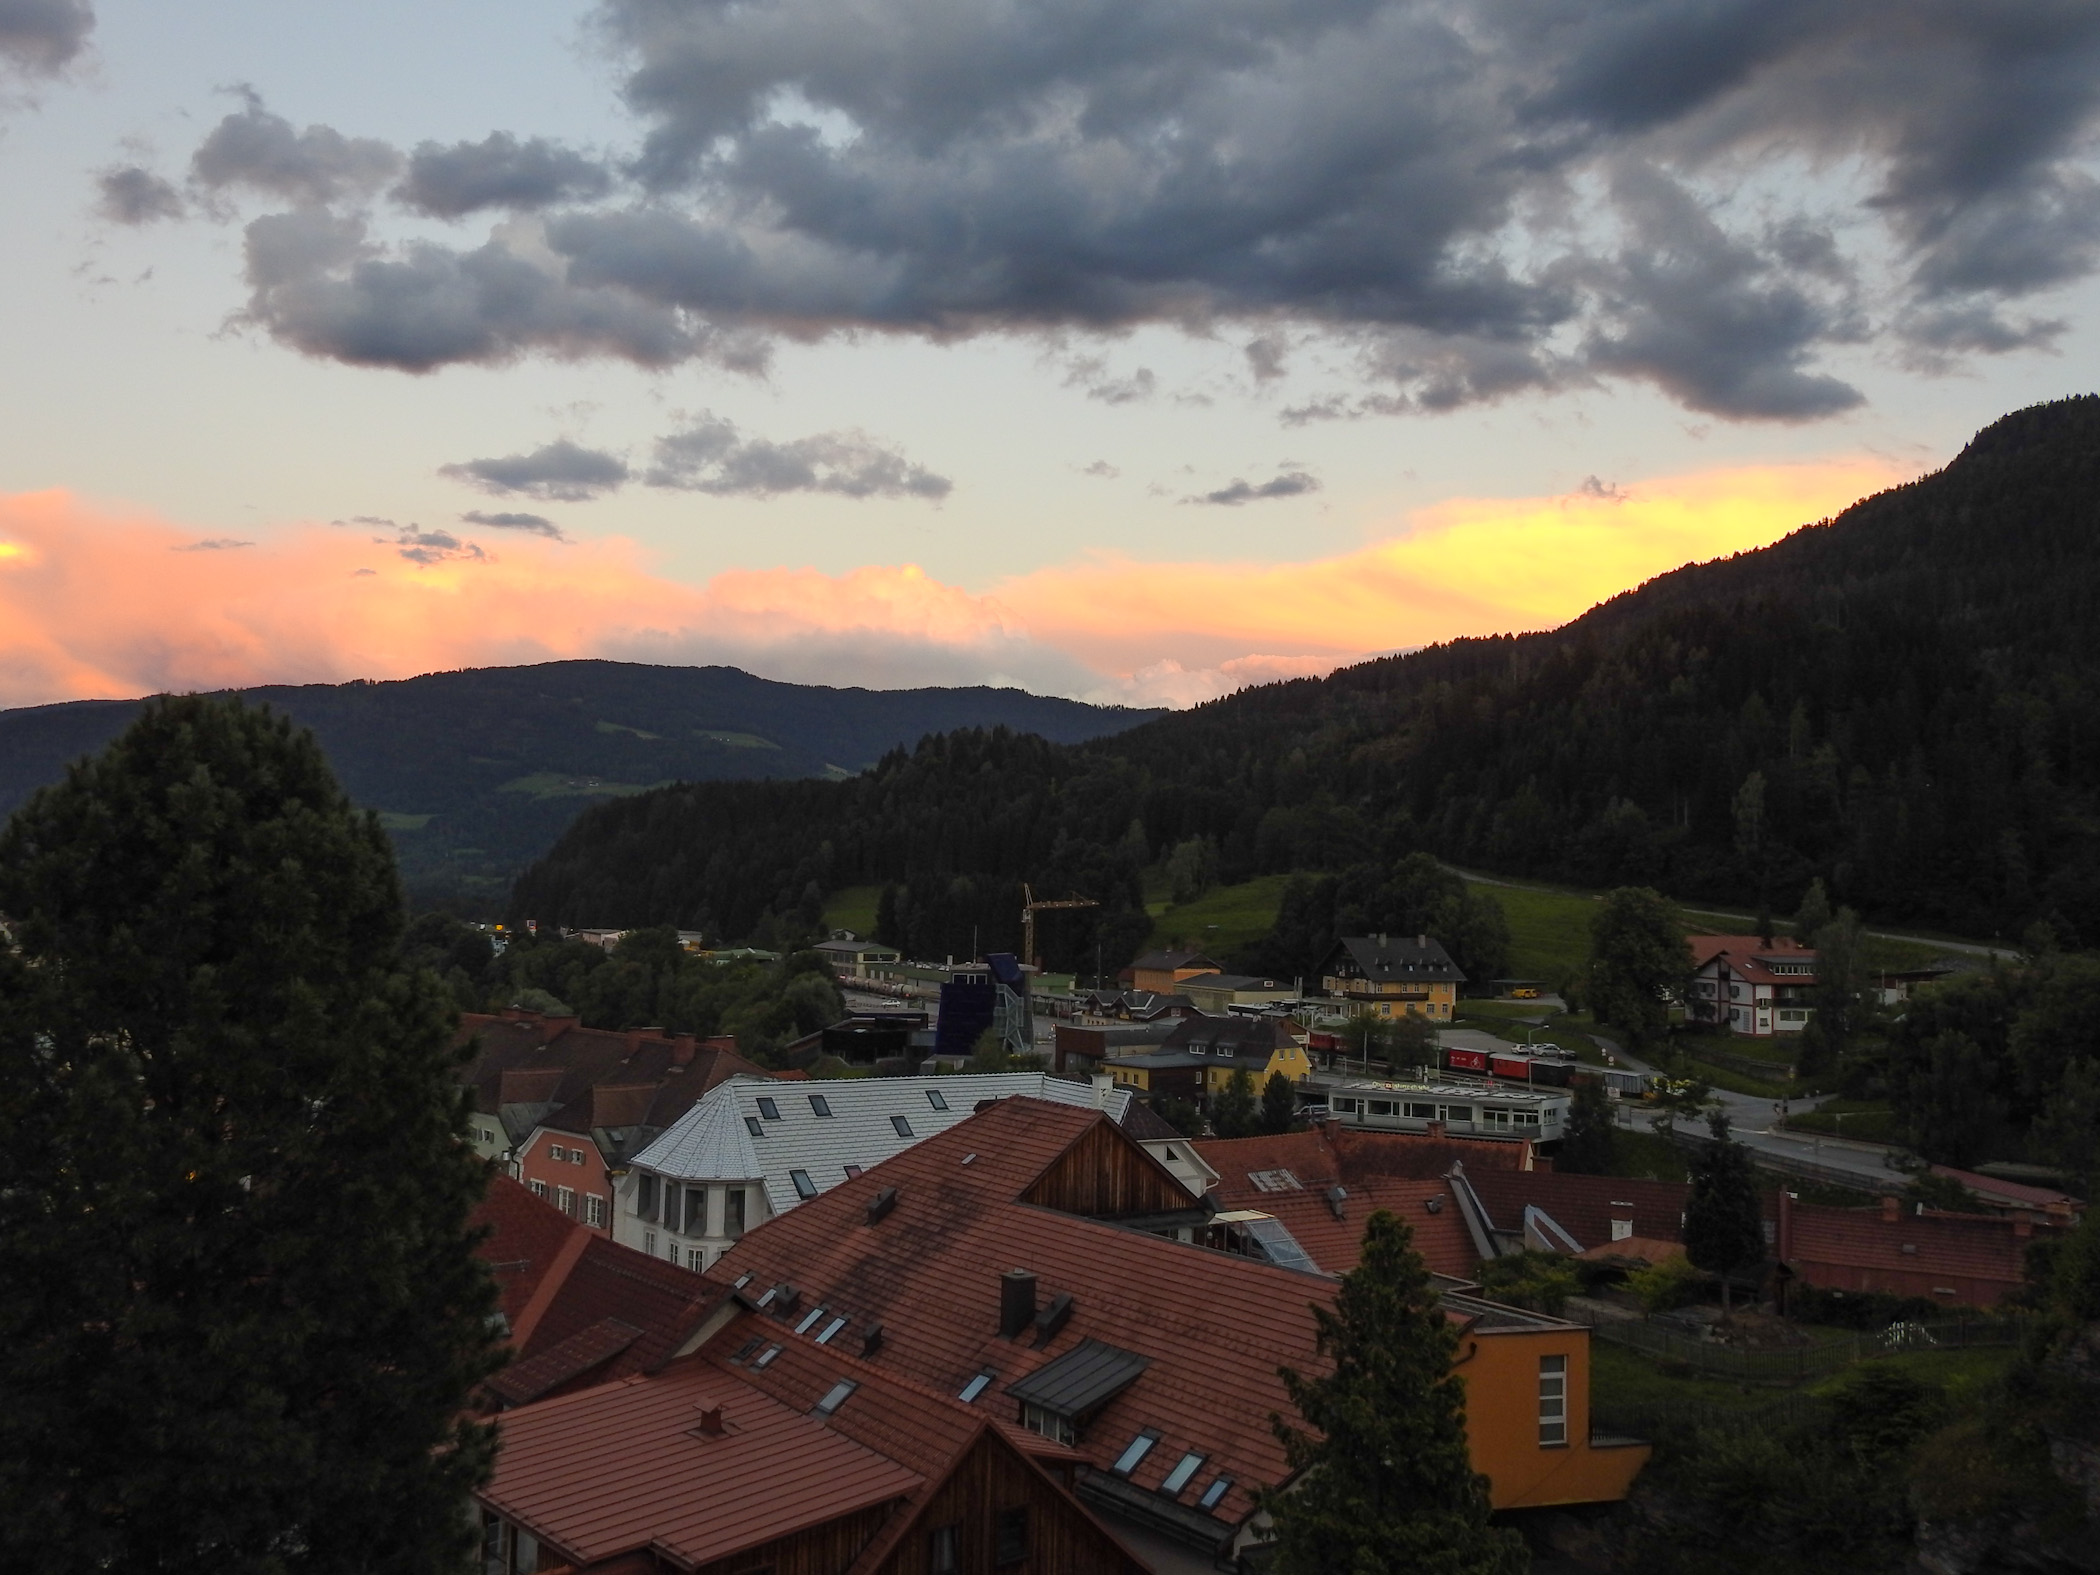 Sunrise over Murau